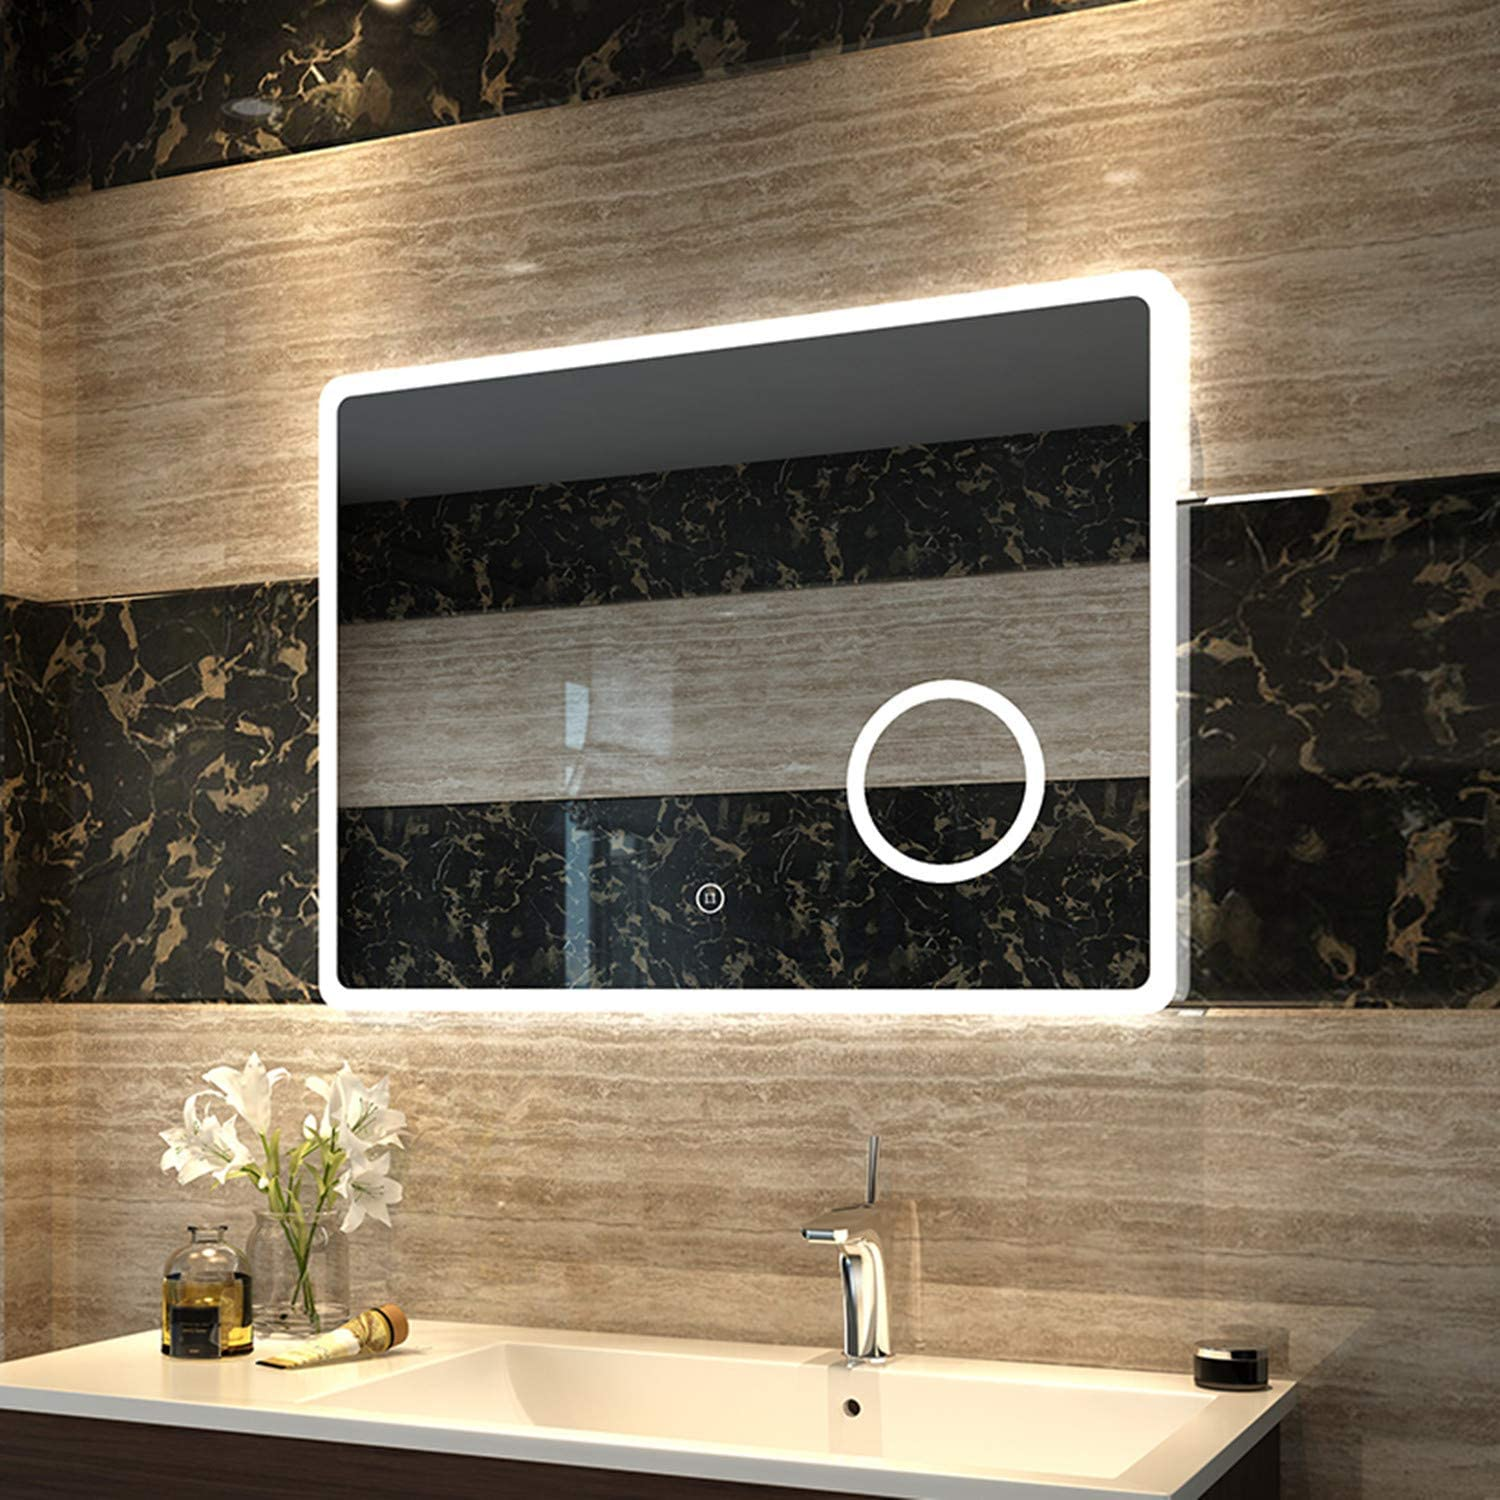 EMKE 40 x 32 Inch LED Vanity Bathroom Mirror Anti-Fog Dimmable Wall Mounted Makeup Mirror with Lights and Magnifier,Brightness Memory,Smart Touch Switch,UL Listed